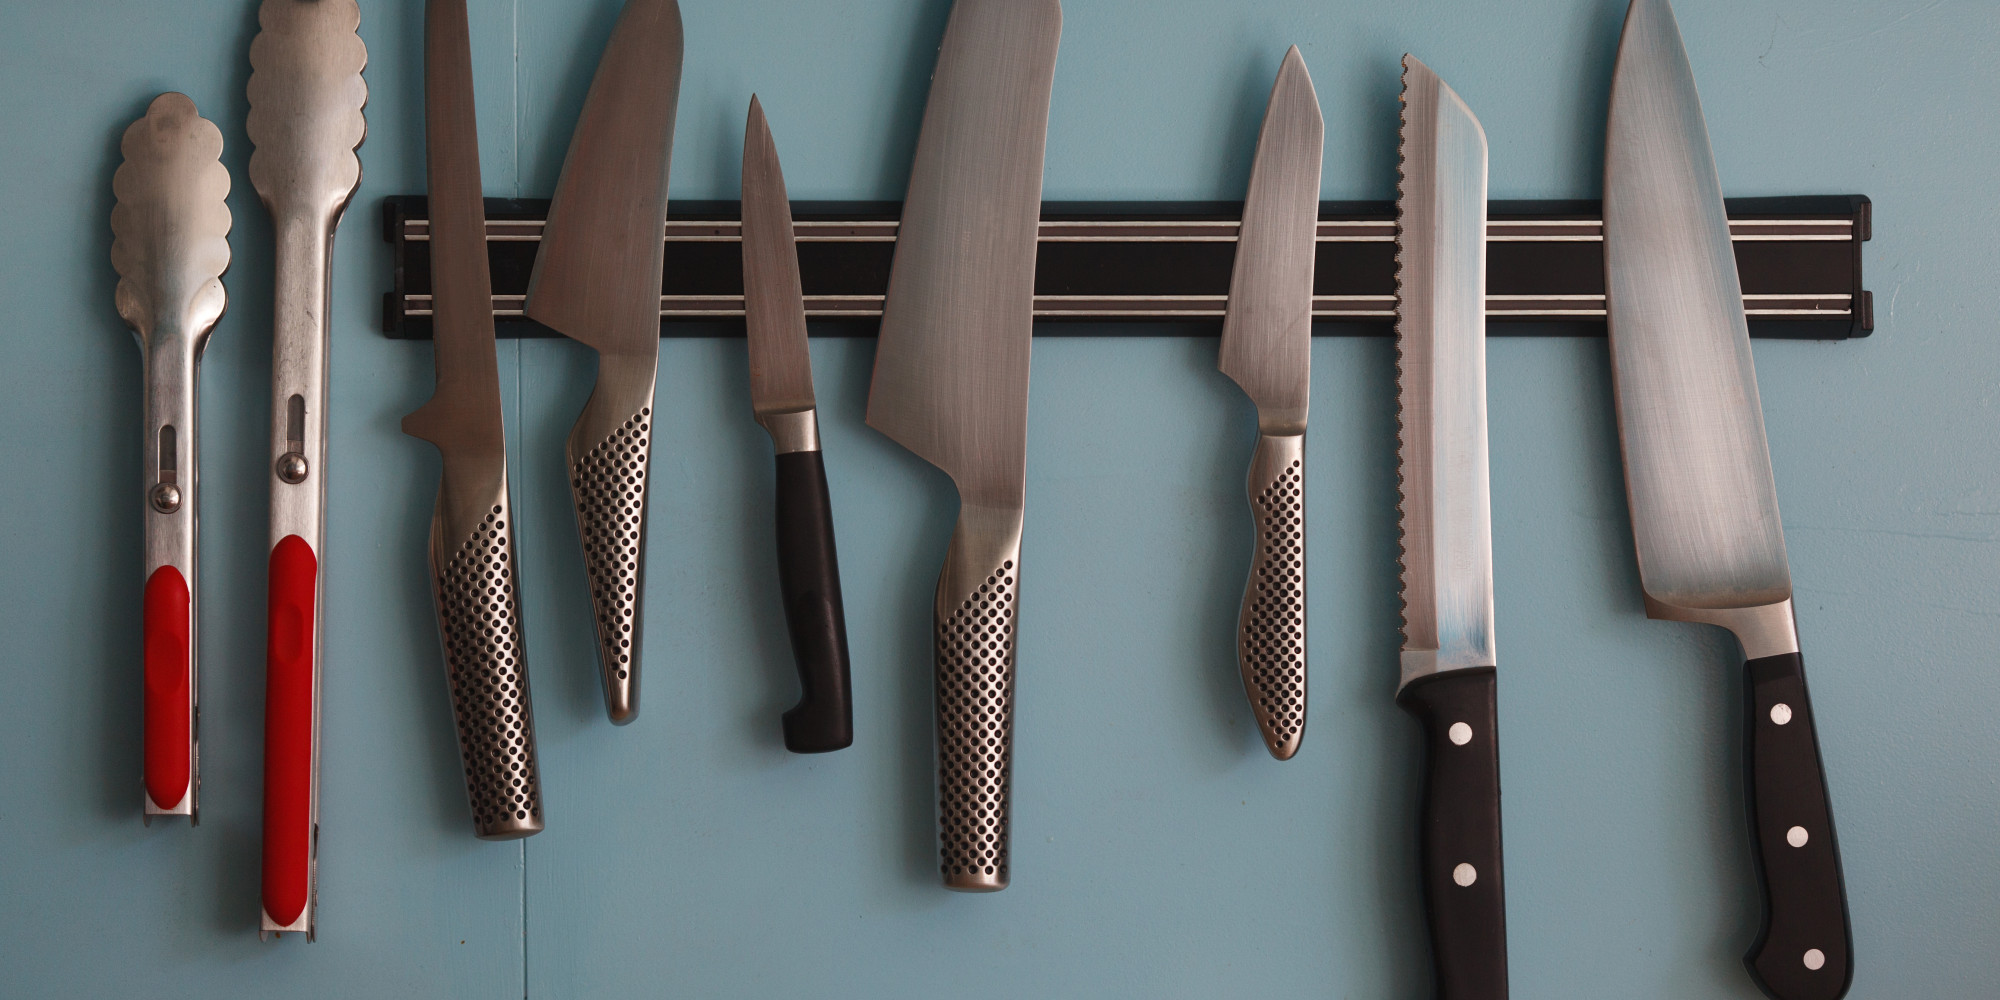 the essential kitchen knives that every wedding registry needs the essential kitchen knives that every wedding registry needs huffpost